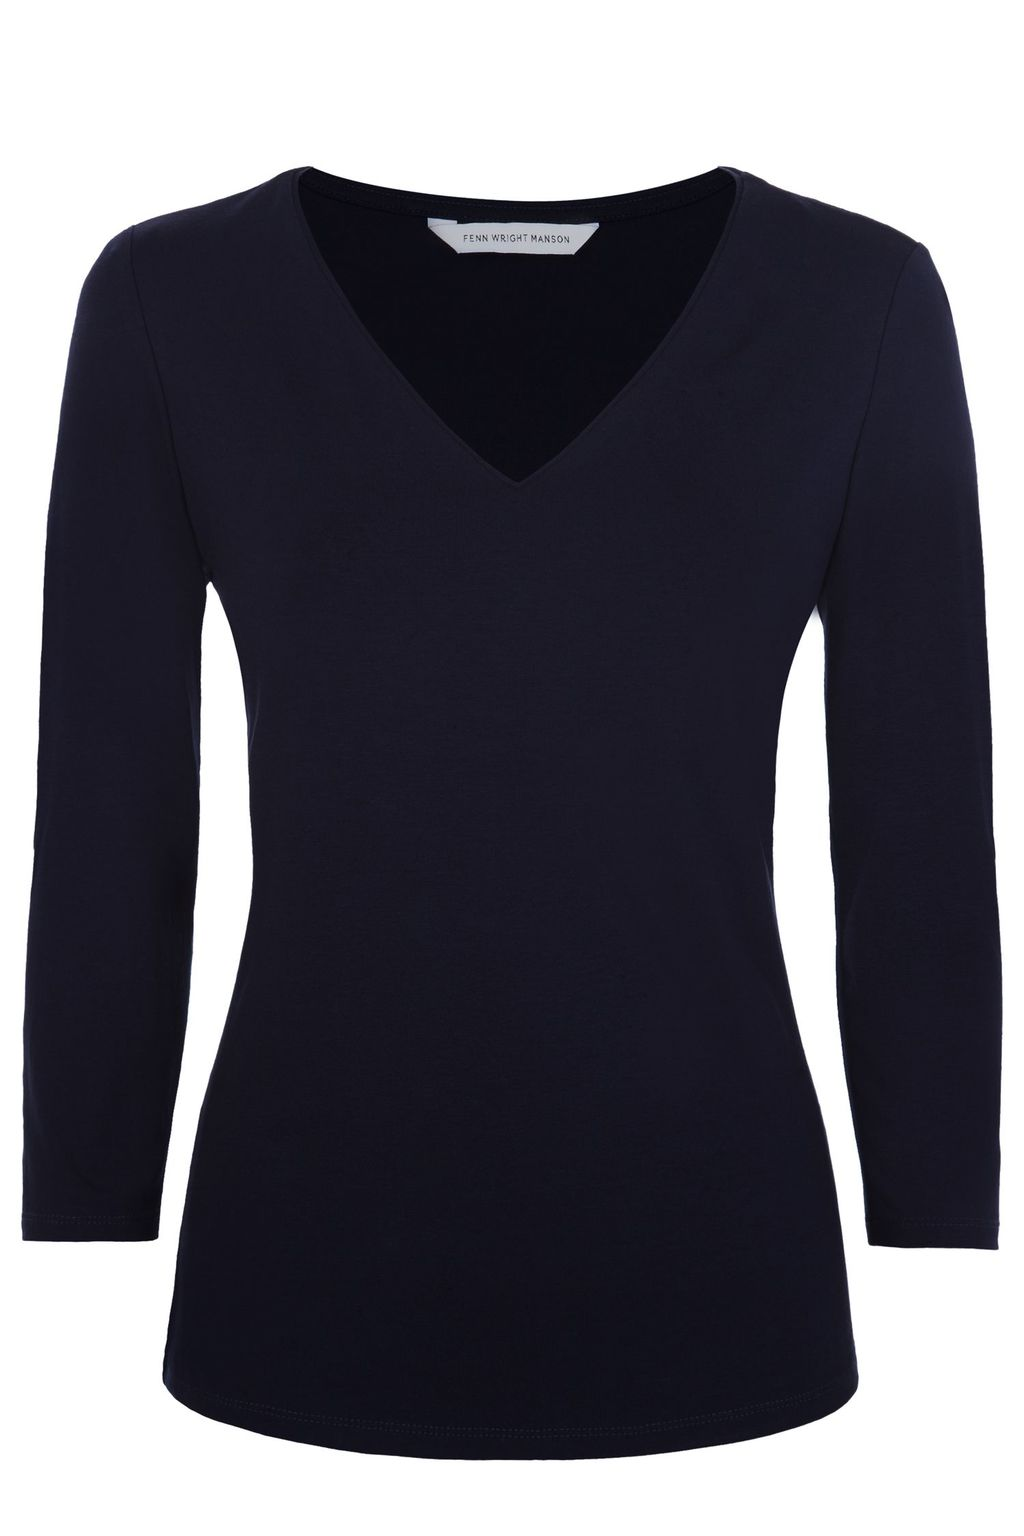 Bosco Top, Navy - neckline: low v-neck; pattern: plain; predominant colour: navy; occasions: casual; length: standard; style: top; fibres: viscose/rayon - stretch; fit: body skimming; sleeve length: 3/4 length; sleeve style: standard; pattern type: fabric; texture group: jersey - stretchy/drapey; season: s/s 2016; wardrobe: basic